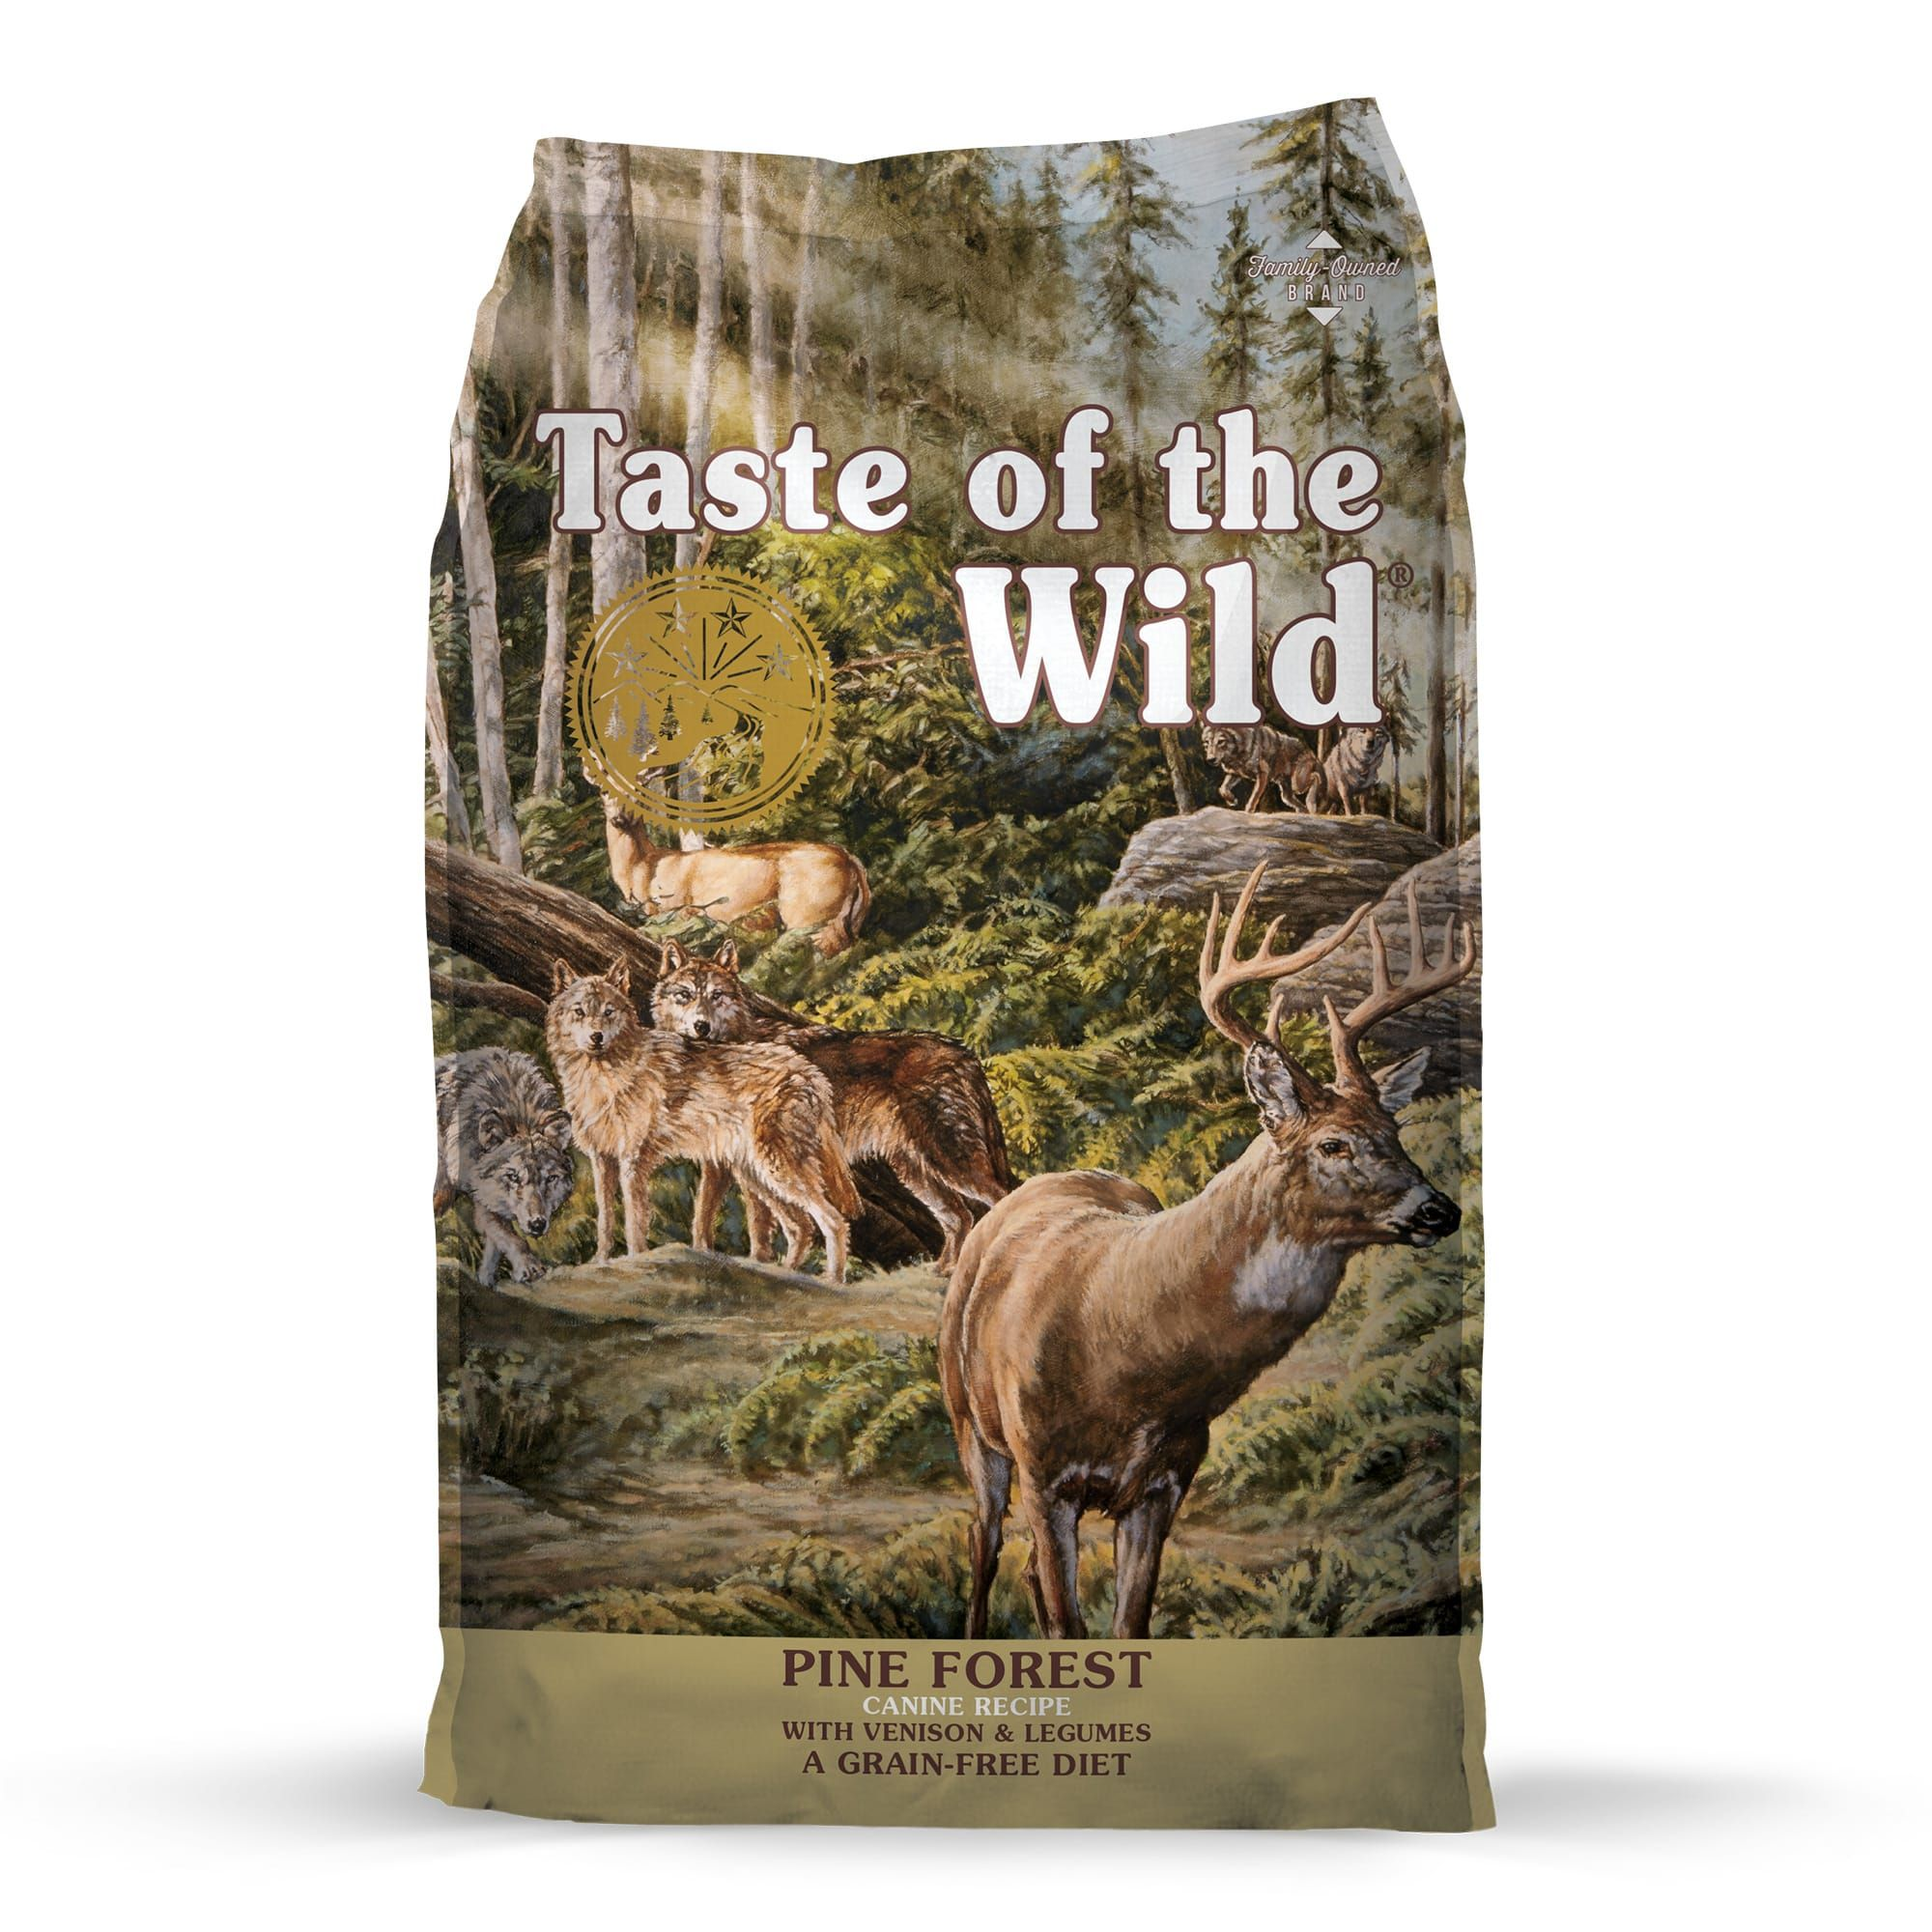 Taste Of The Wild Pine Forest Grain Free Roasted Venison Dry Dog Food 14 Lbs In 2020 Dry Dog Food Dog Food Recipes Dog Food Reviews